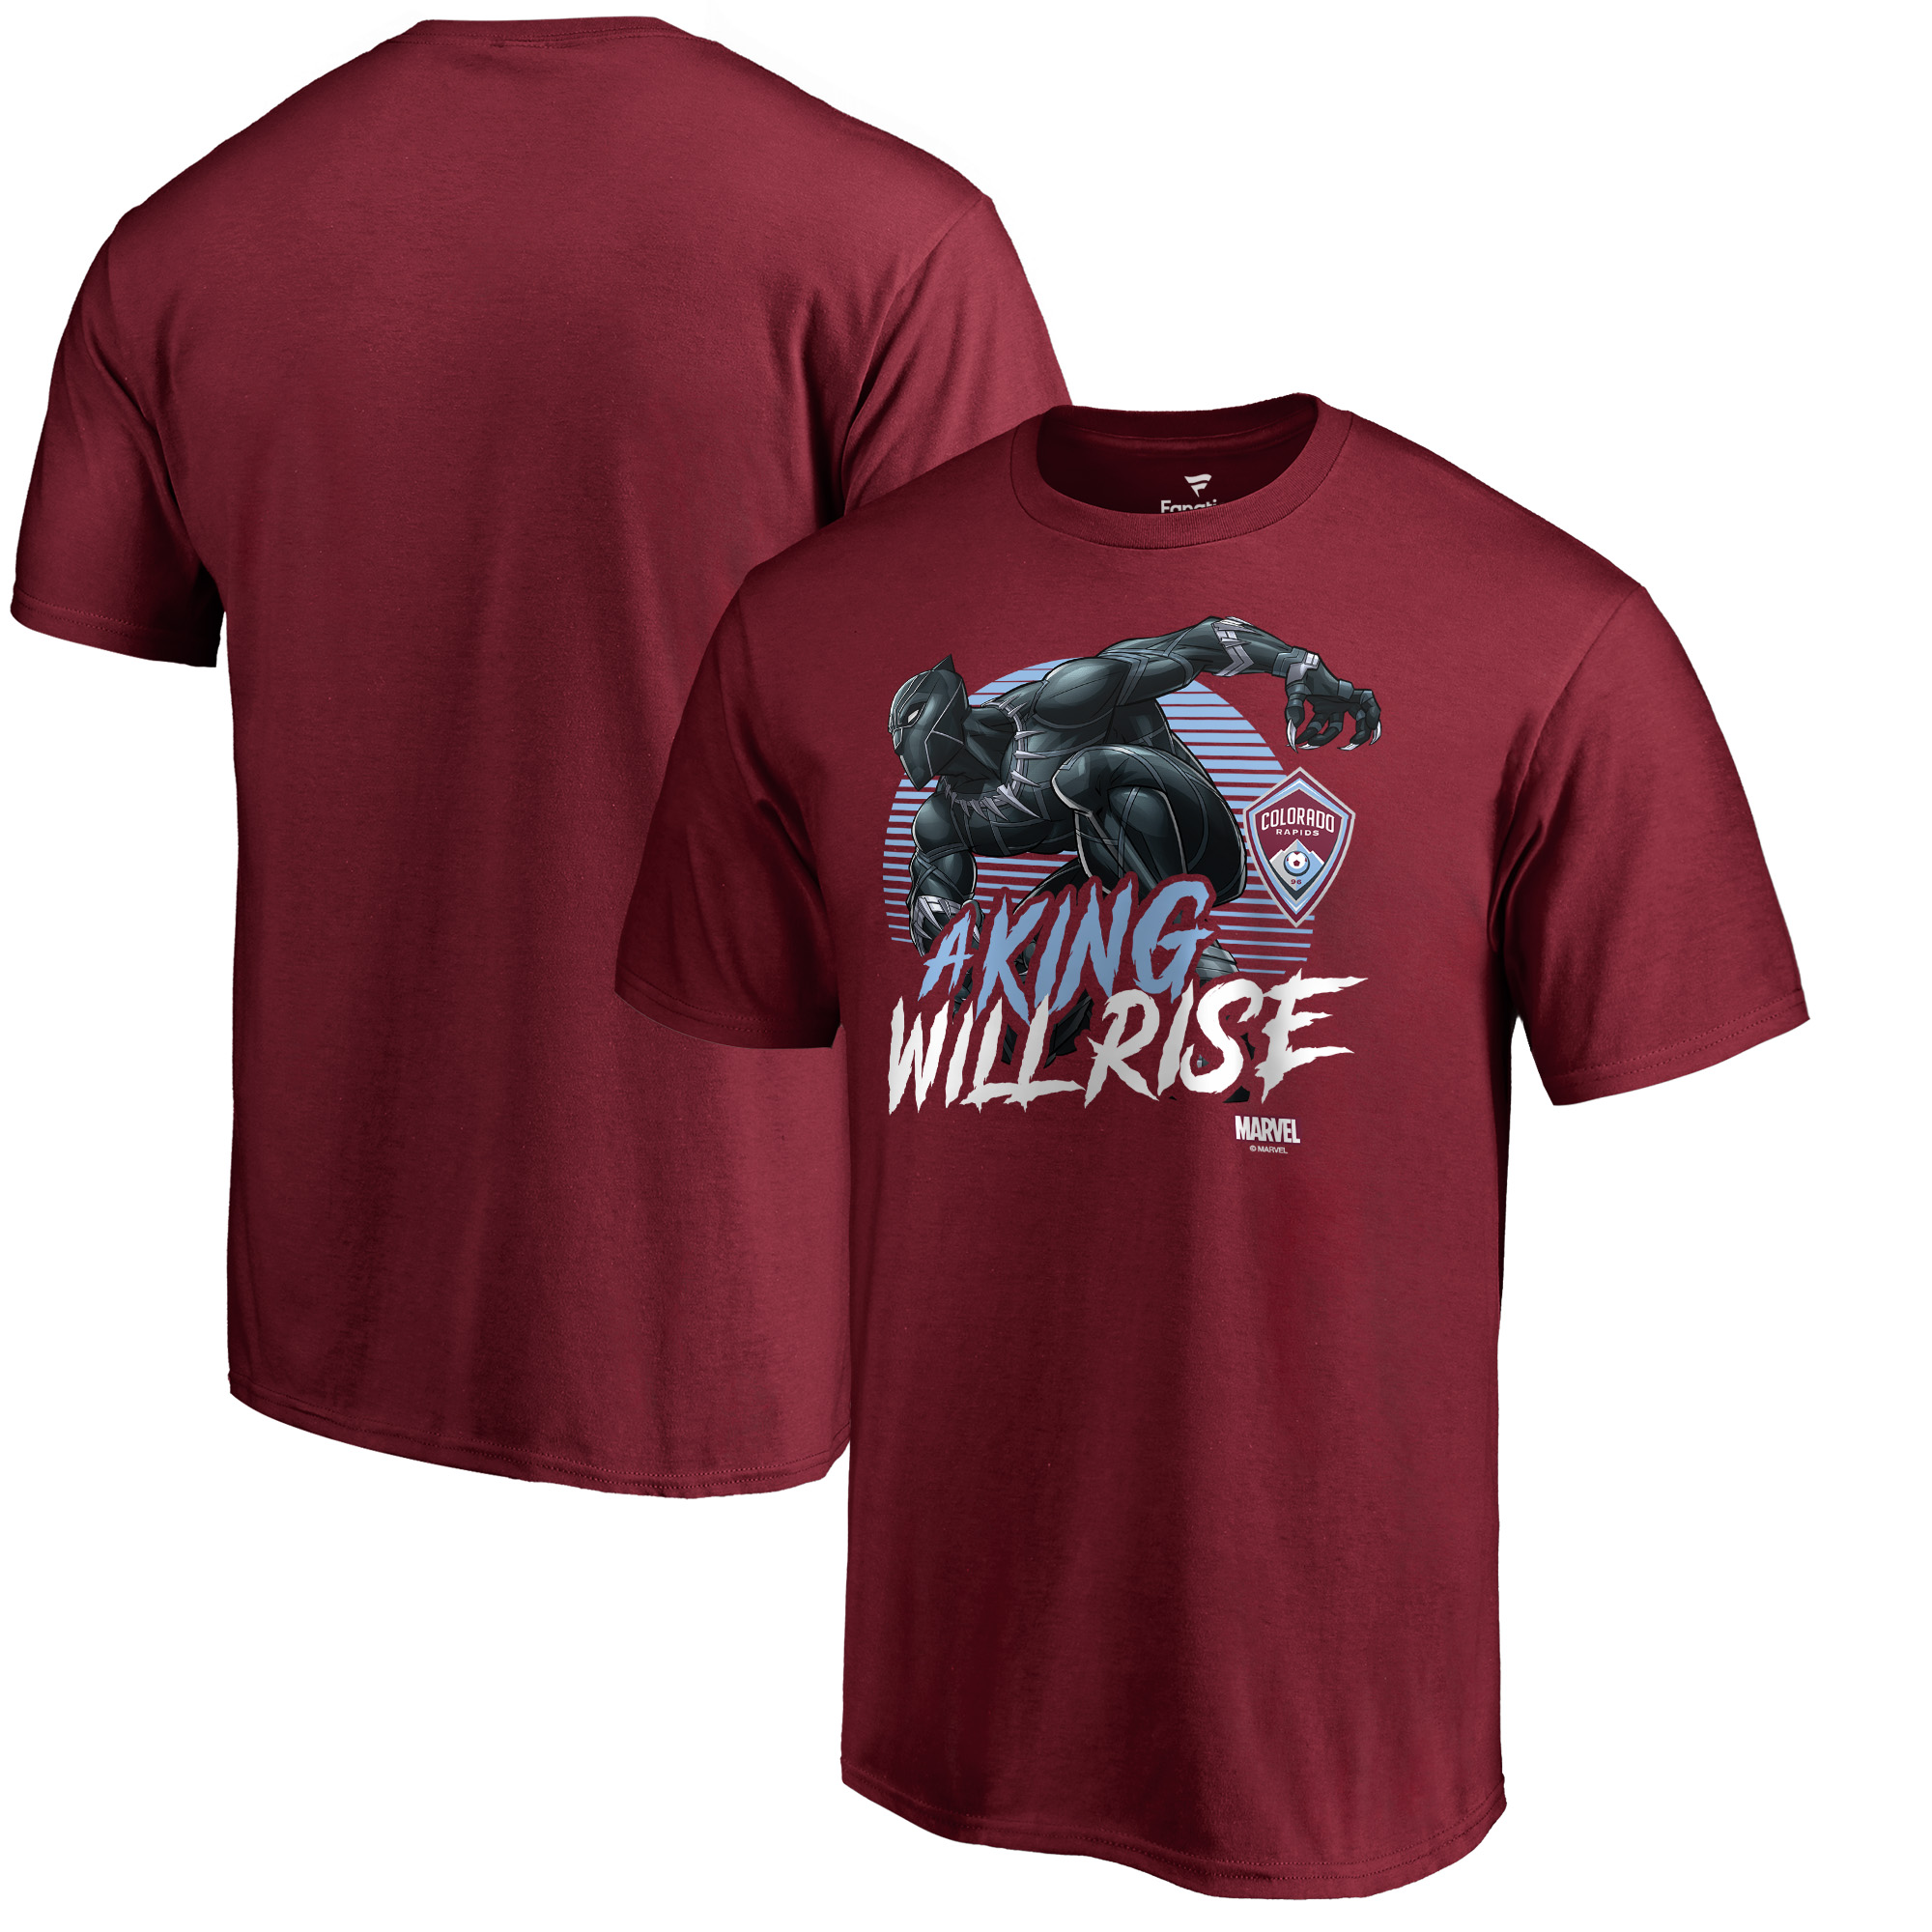 Colorado Rapids Fanatics Branded Marvel Wakanda Forever T-Shirt - Burgundy